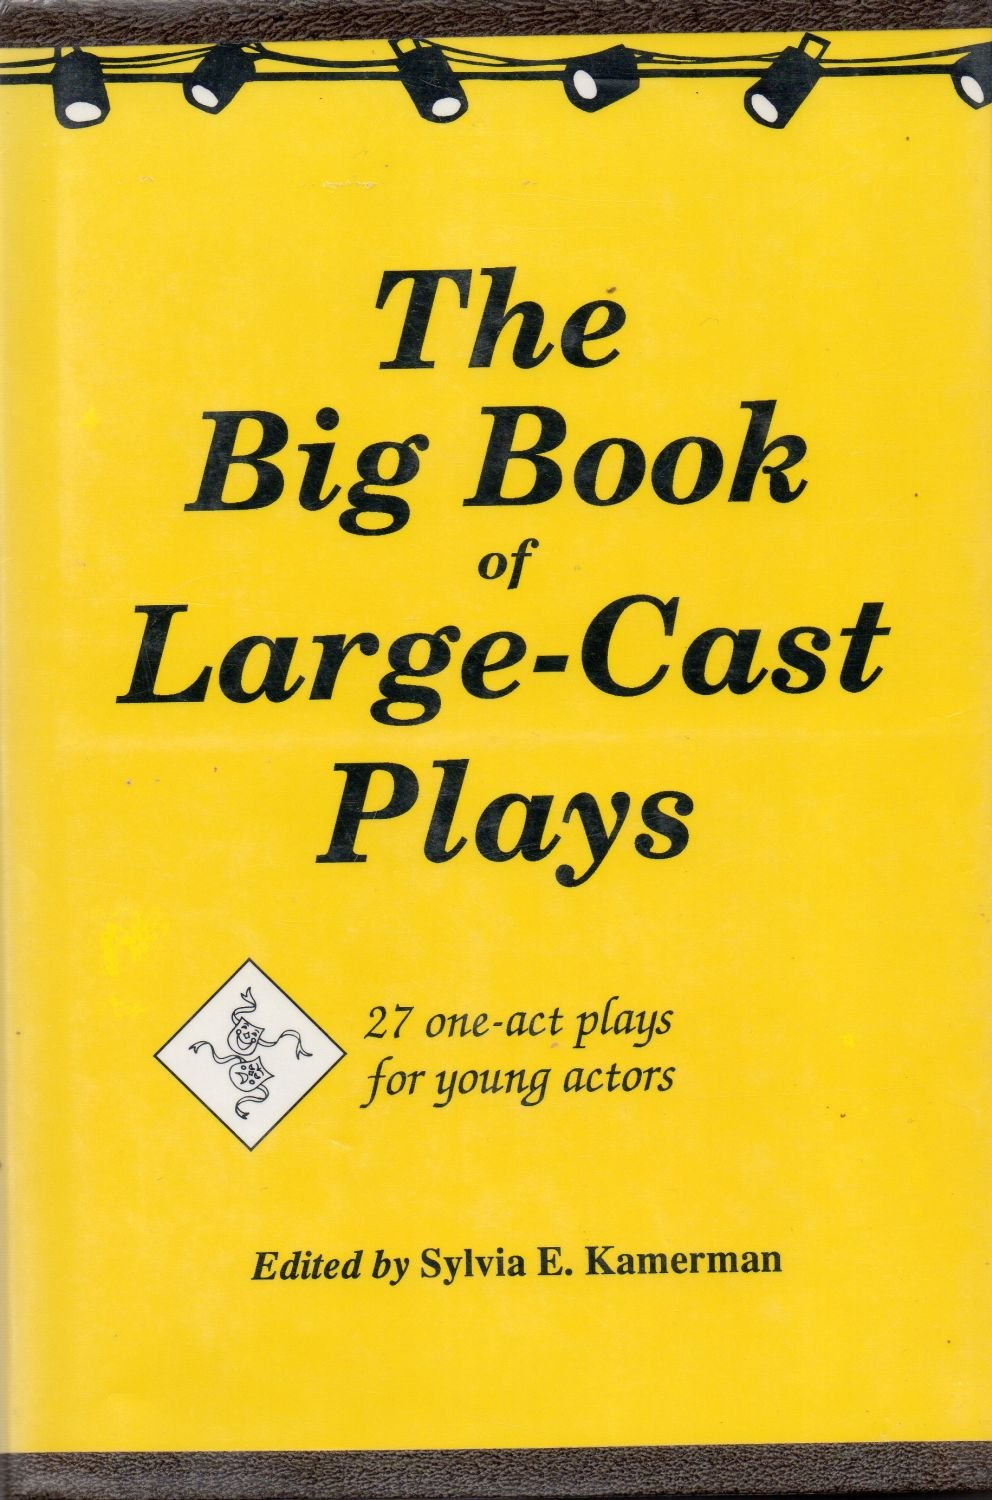 The Big Book of Large-Cast Plays: 27 One-Act Plays for Young